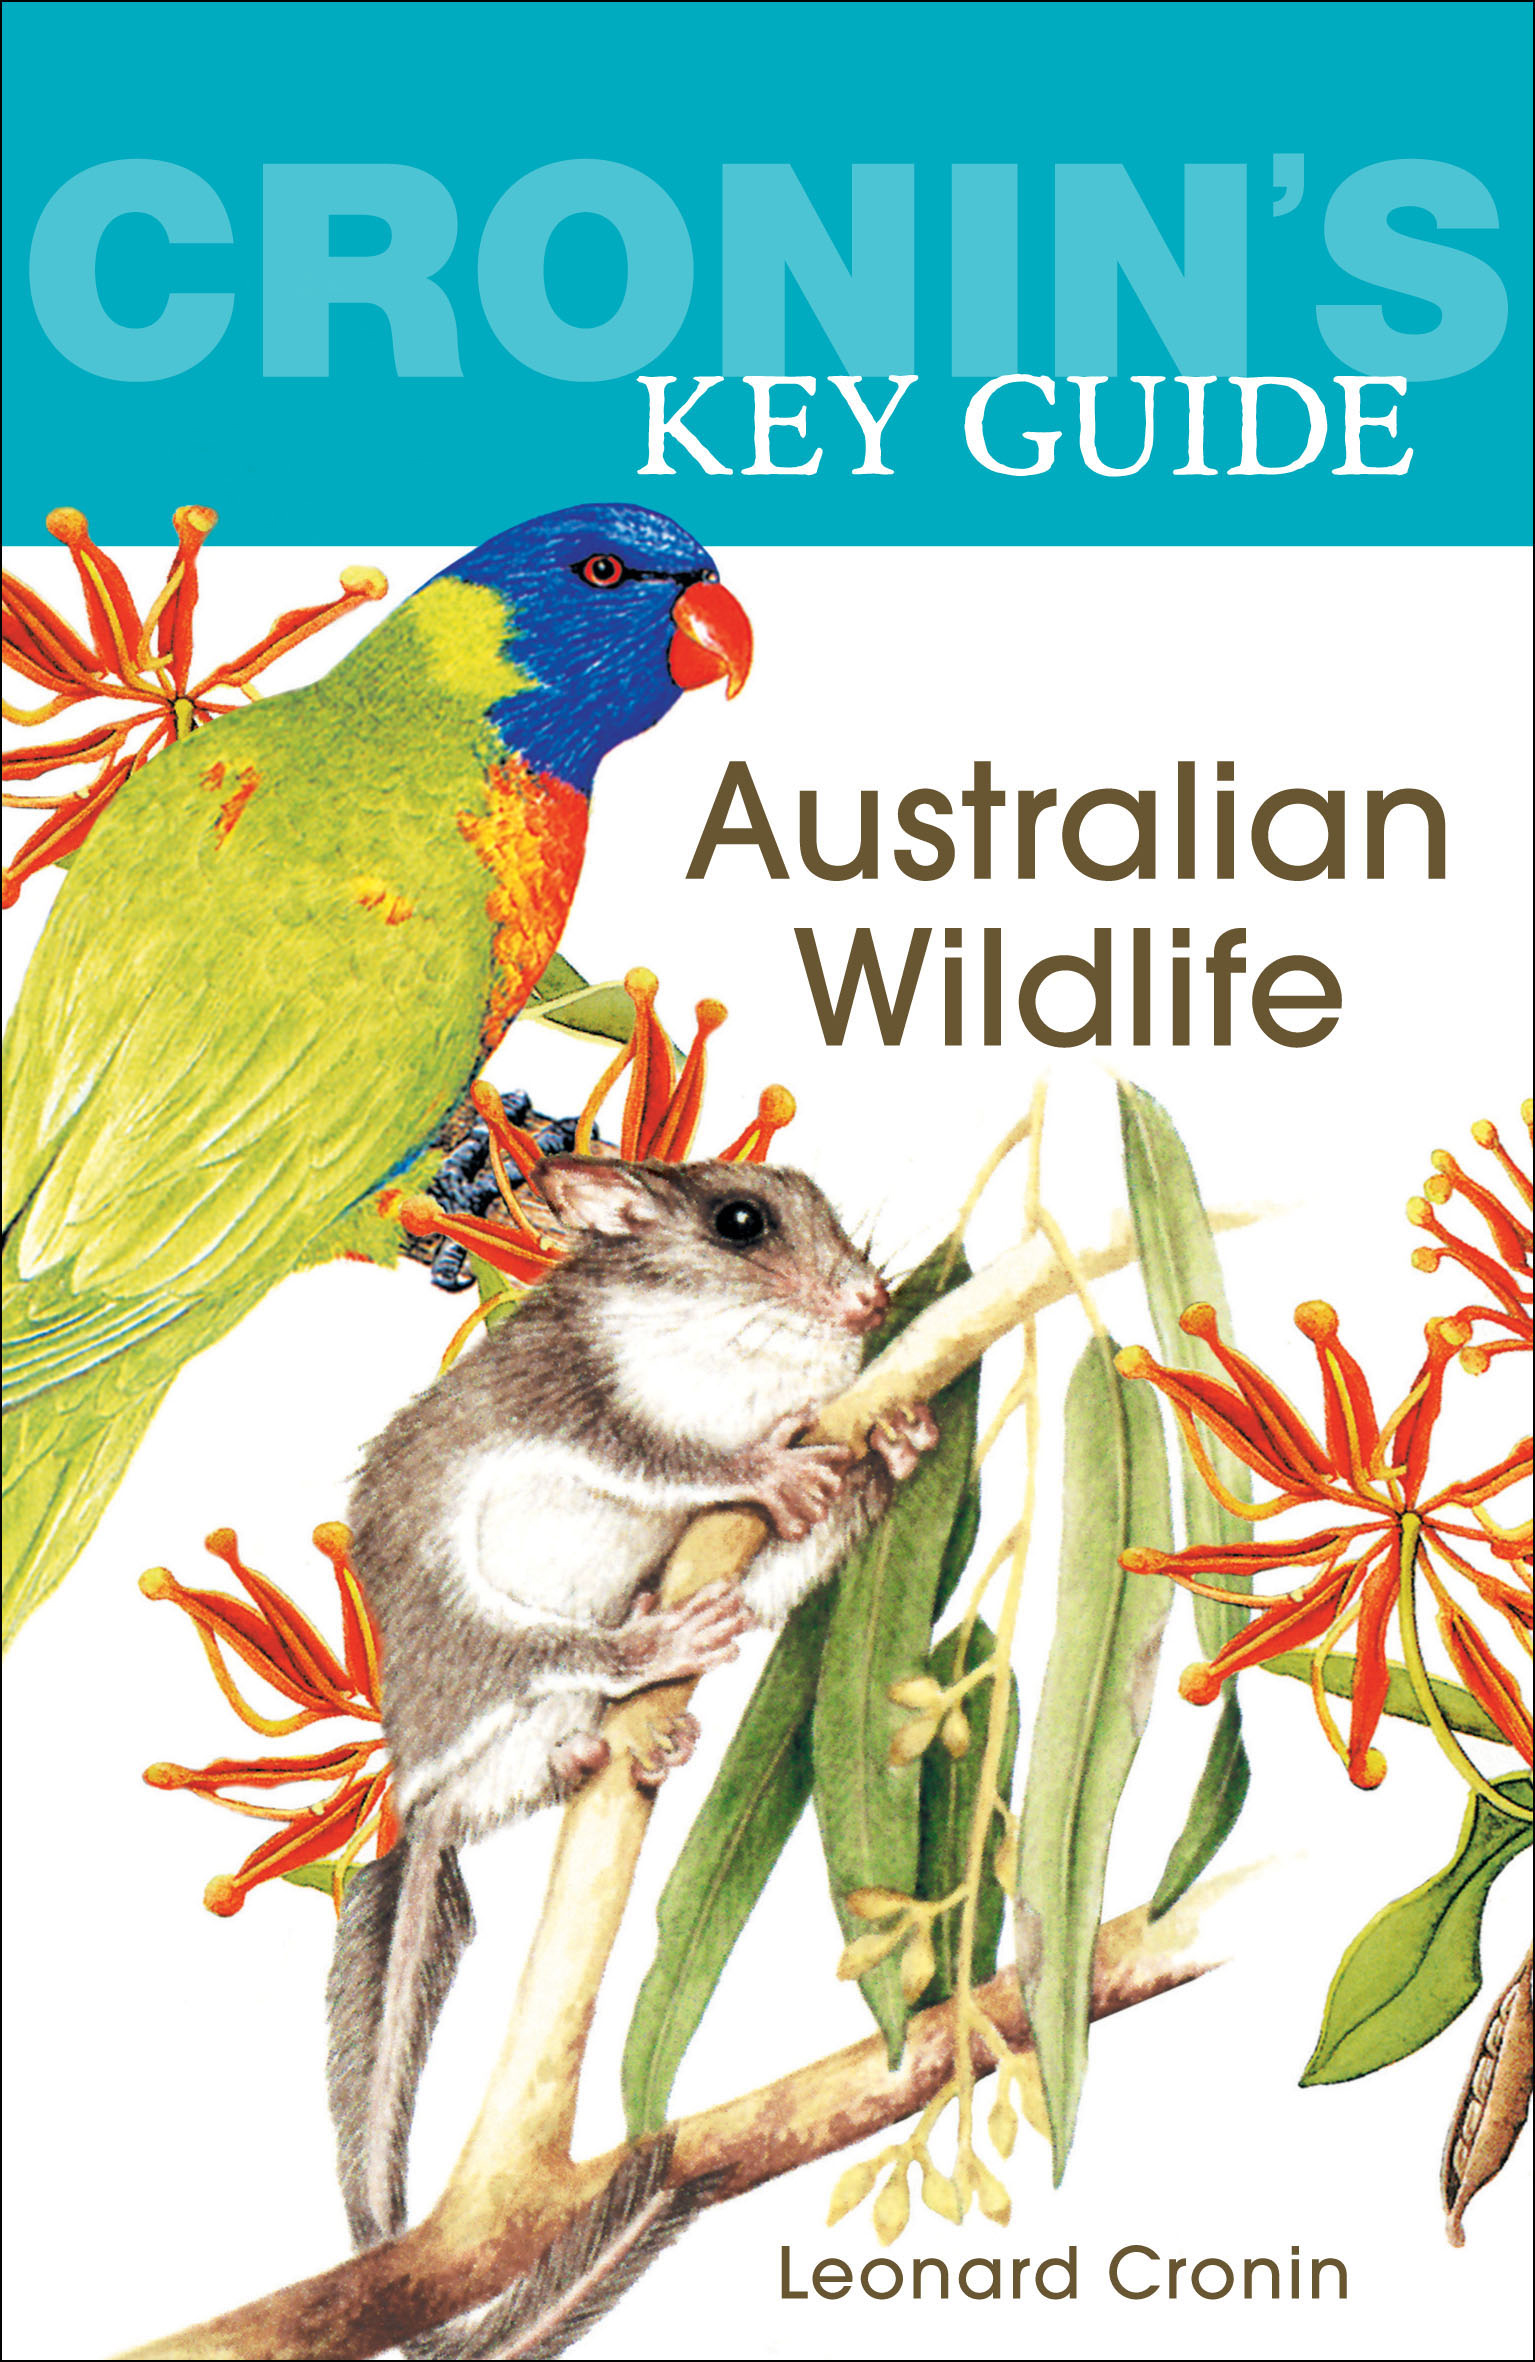 Cronin's Key Guide to Australian Wildlife by Leonard Cronin, ISBN: 9781741750751